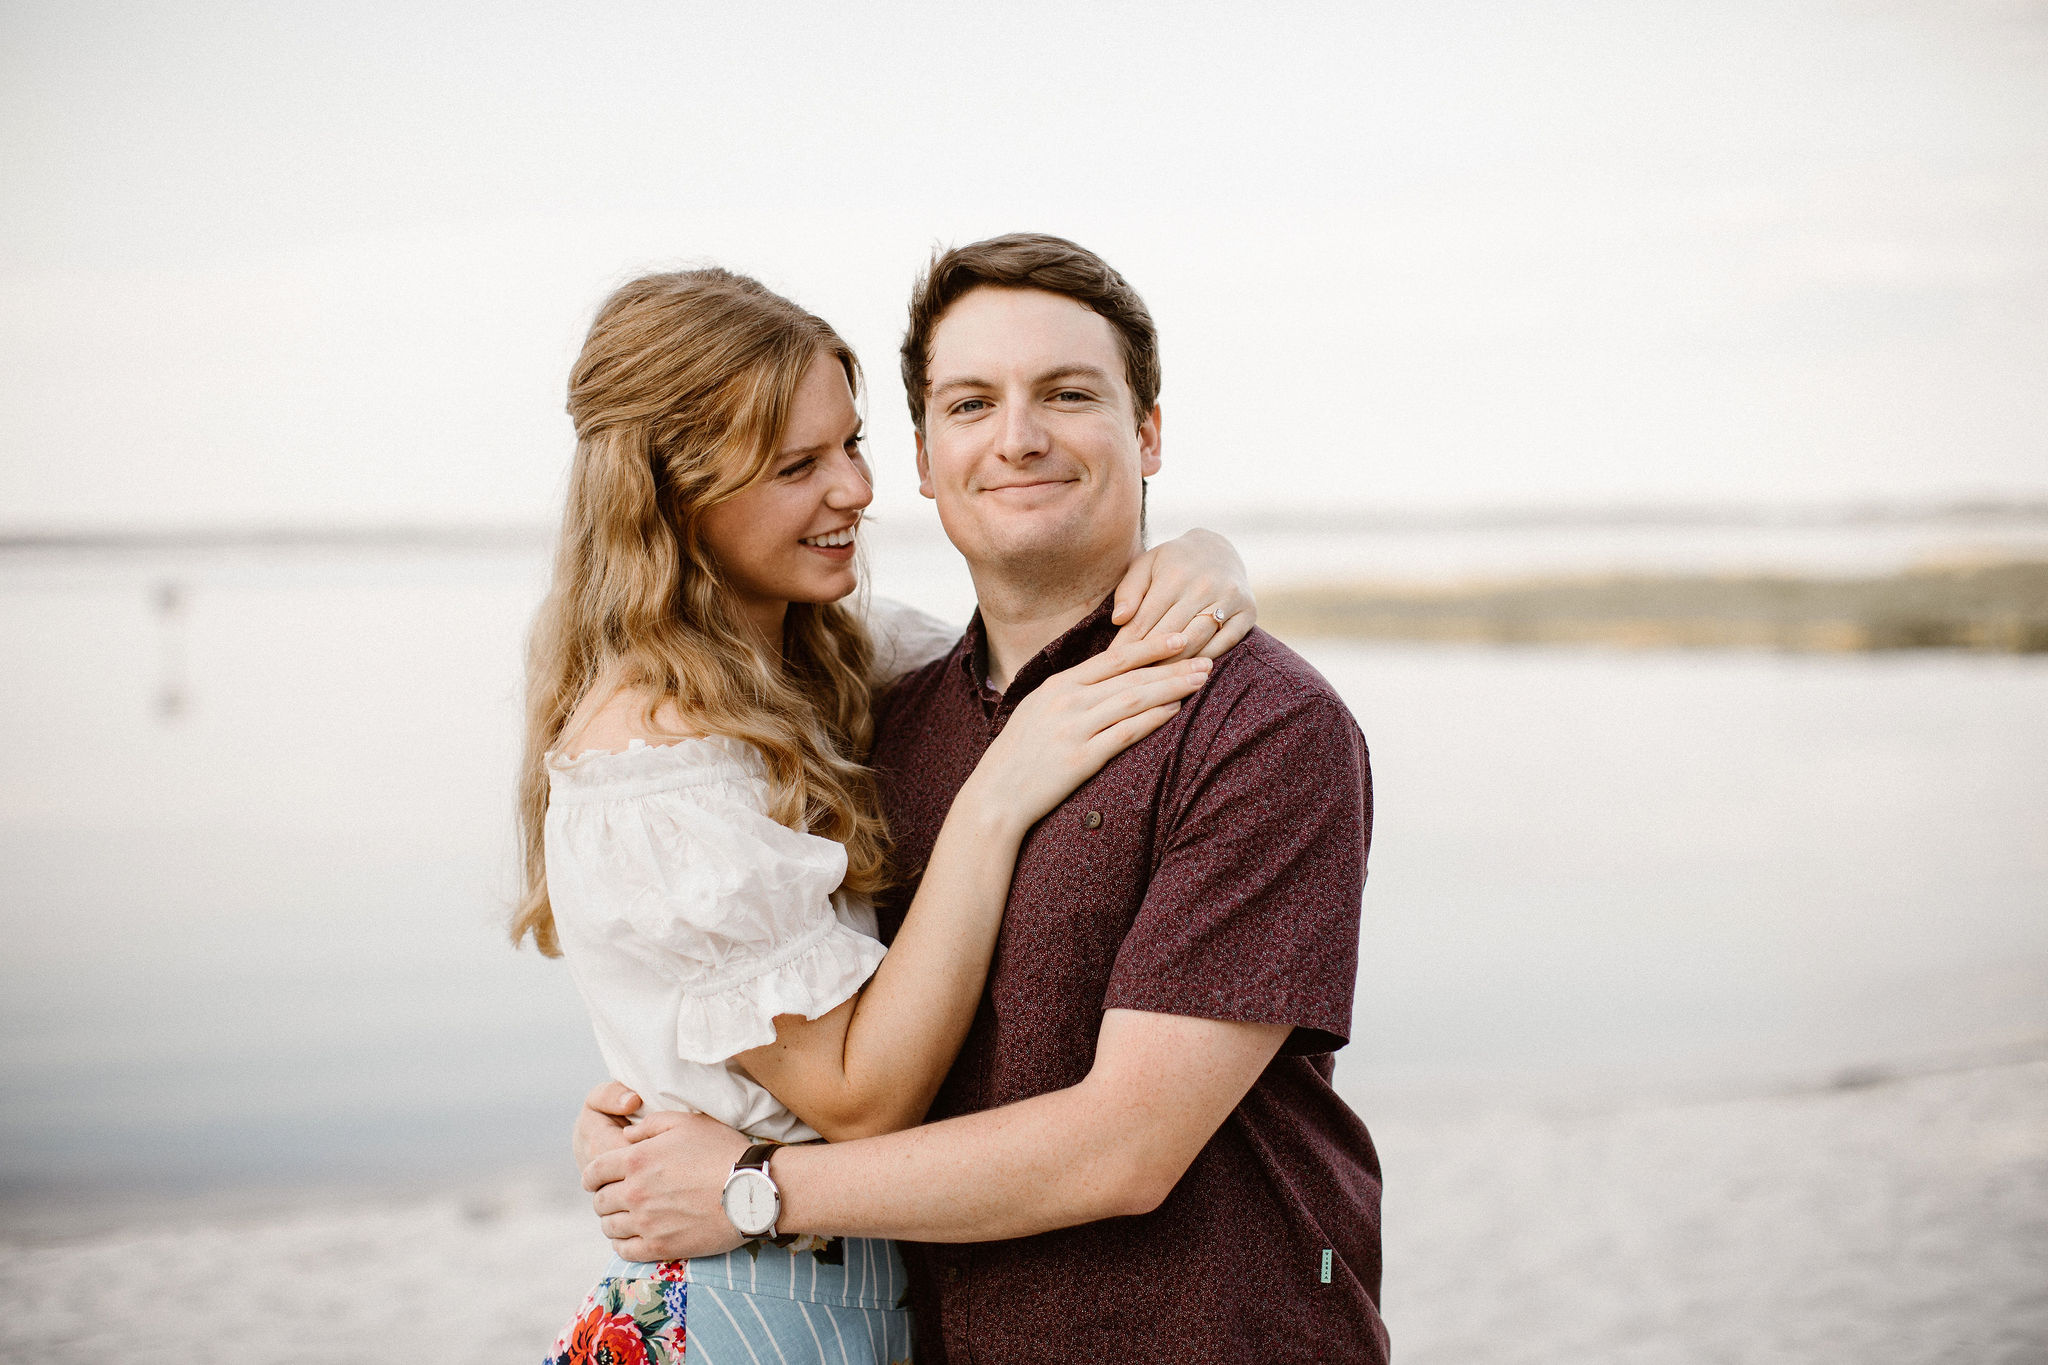 lindsey+joe_engagement_79.jpg